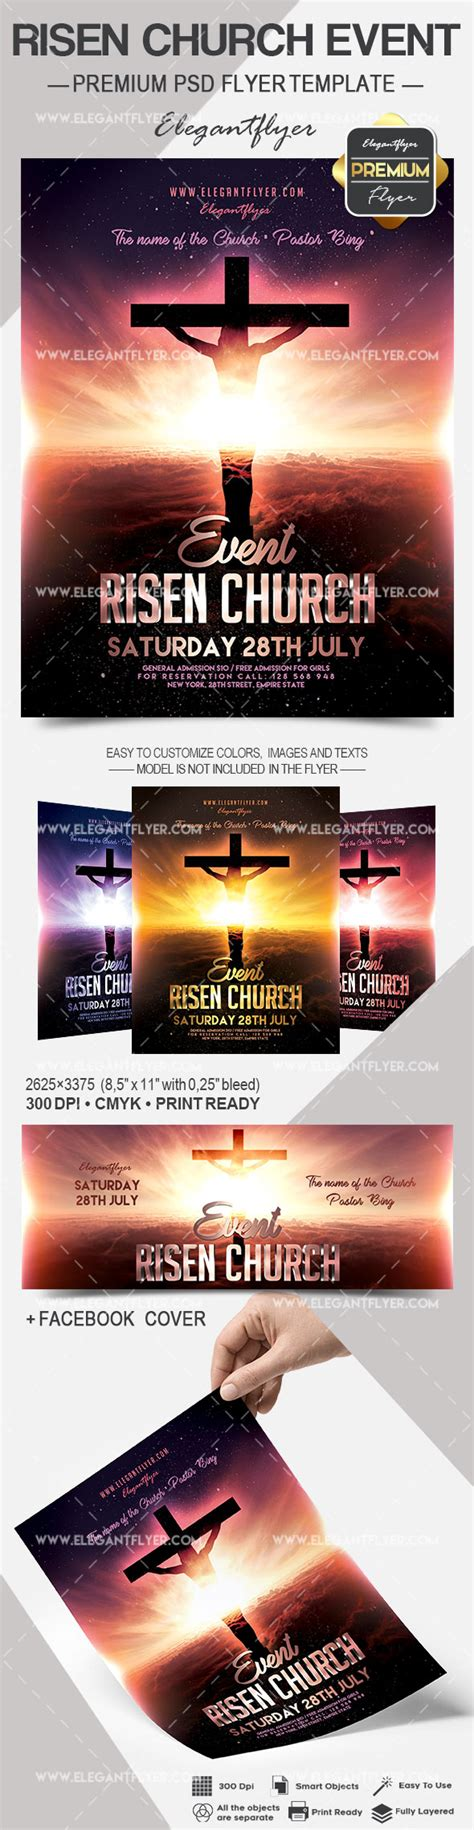 Risen Church Event Flyer Psd Template By Elegantflyer Church Event Flyer Templates